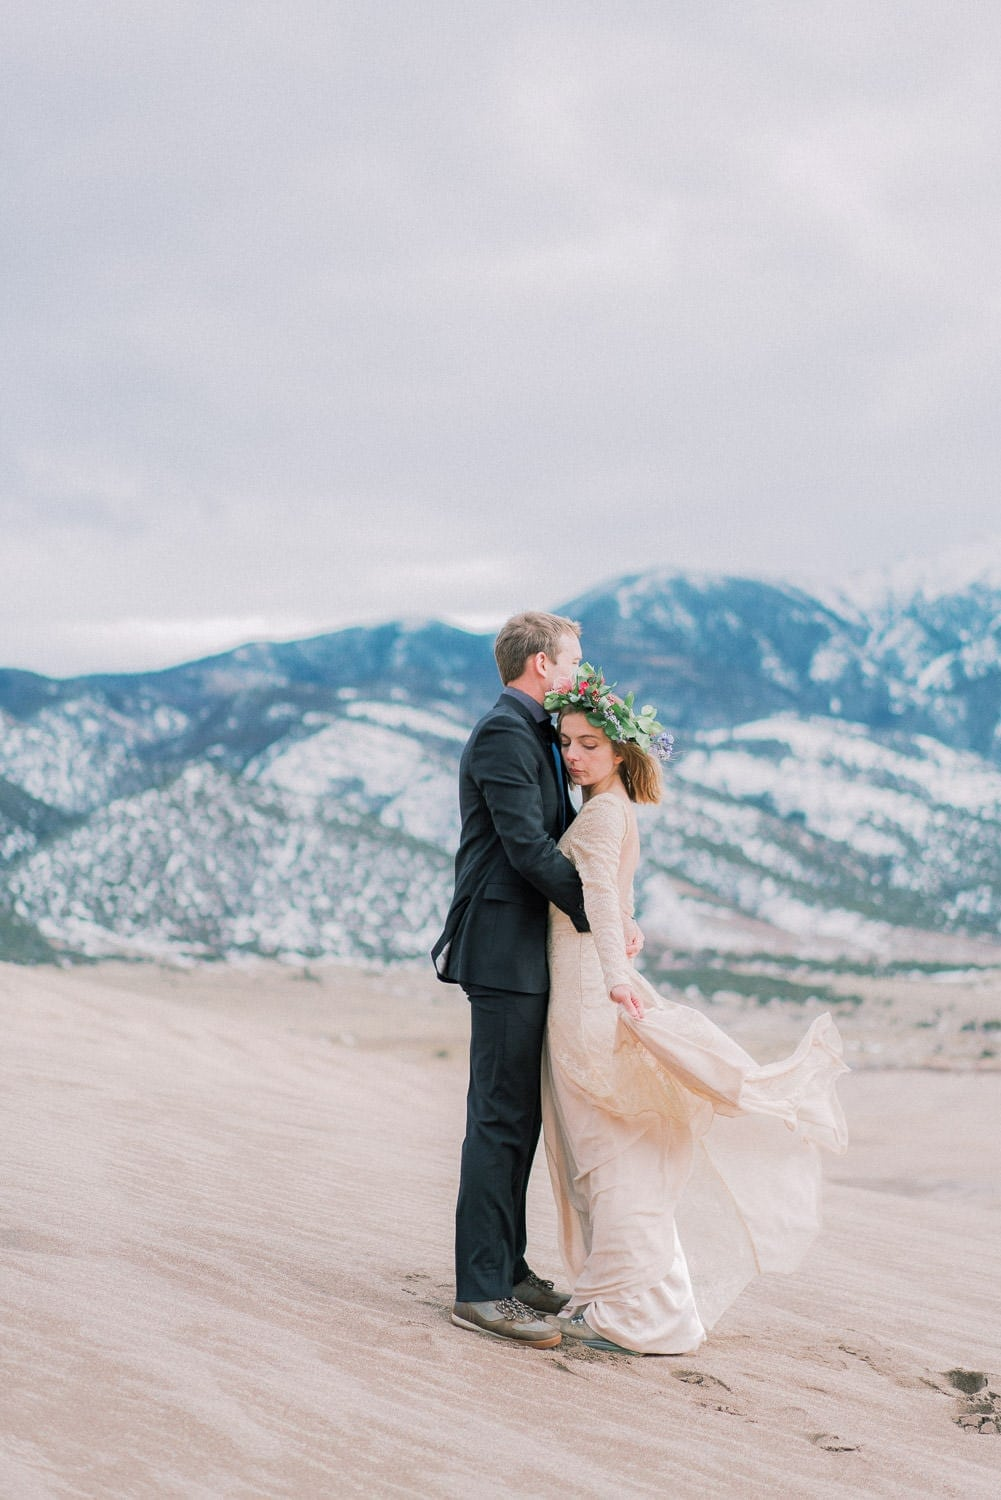 elopement photography in Colorado by Malachi Lewis at Shell Creek Photography